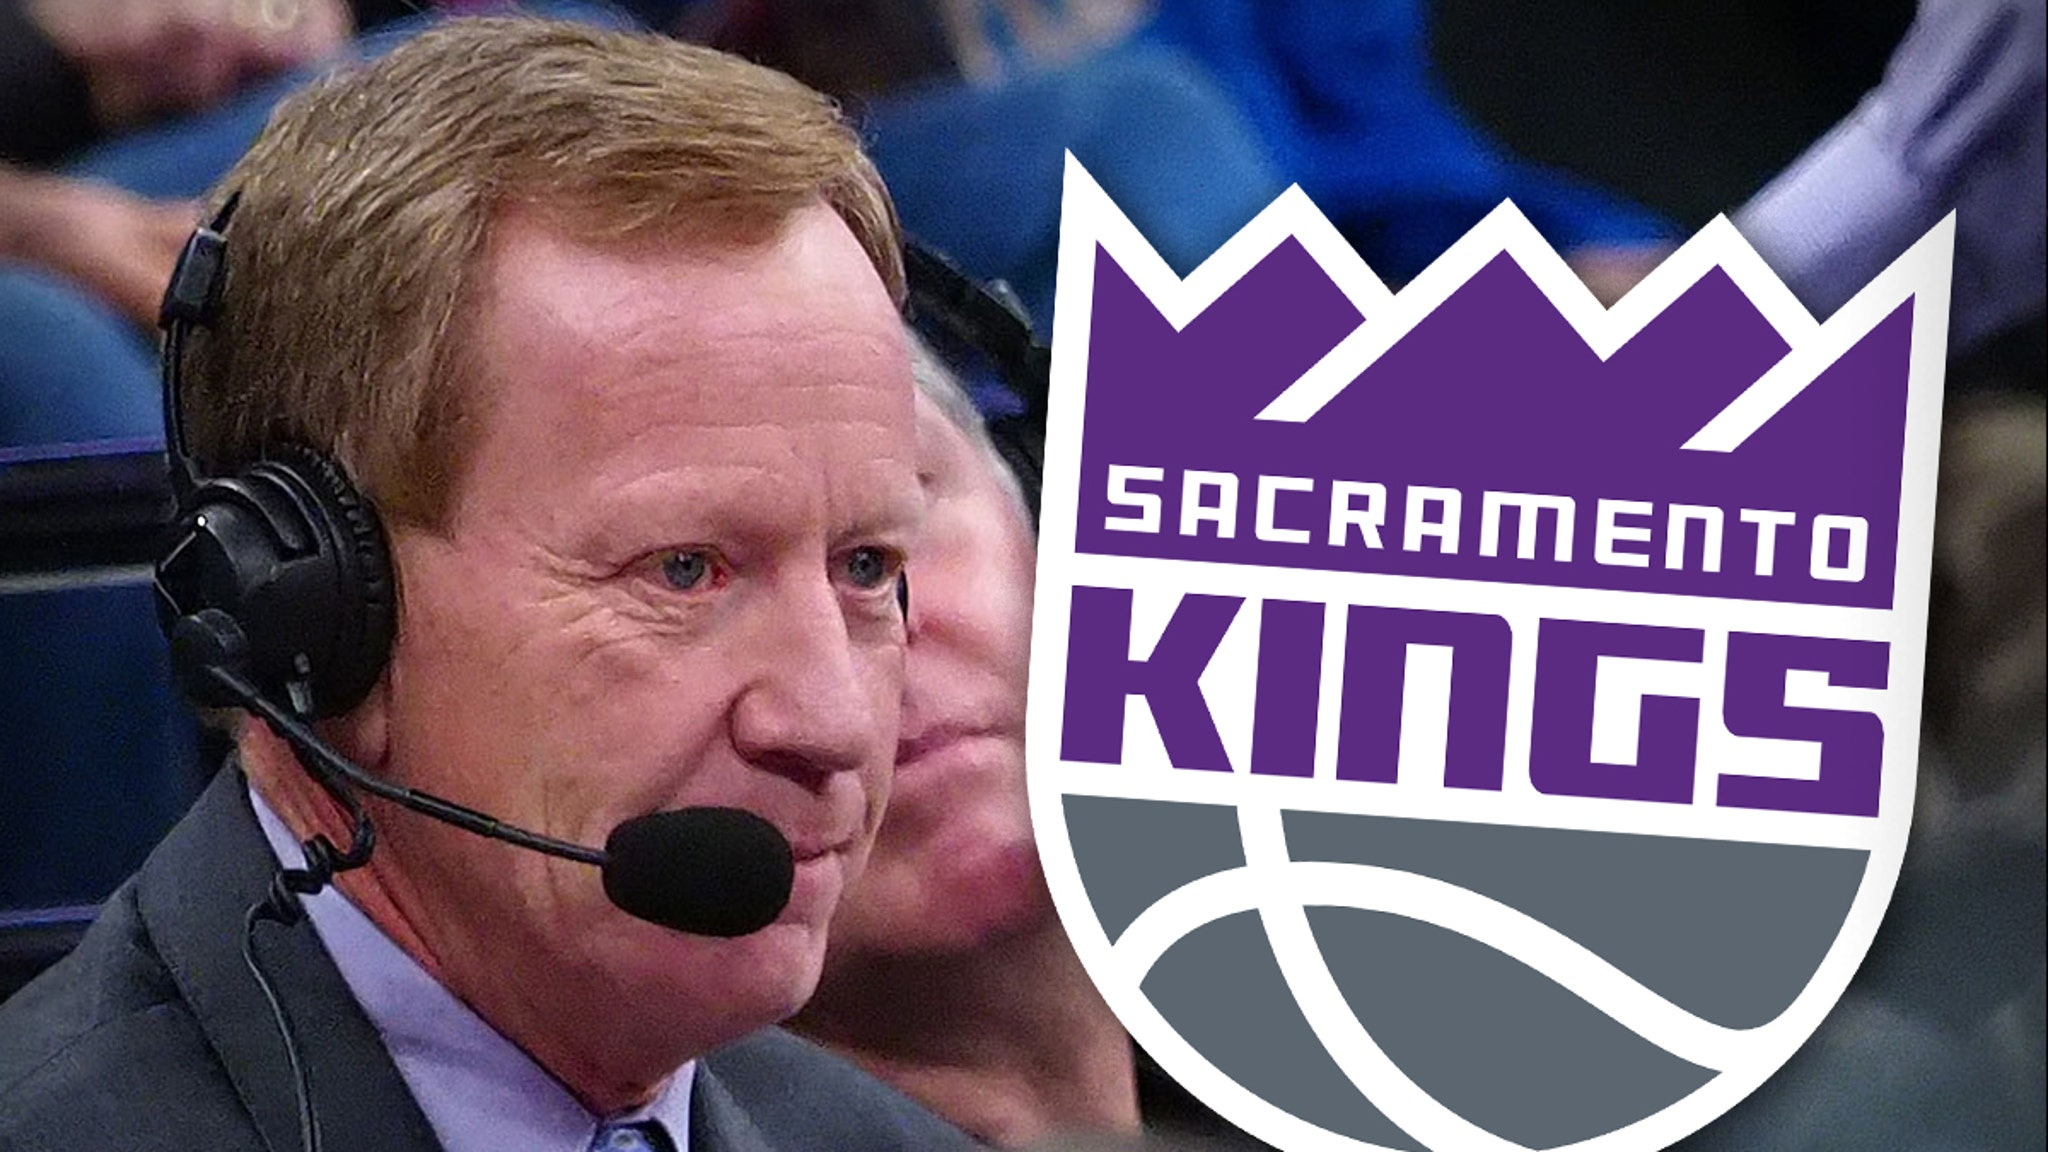 Sacramento Kings Announcer Resigns After Tweeting 'All Lives Matter'